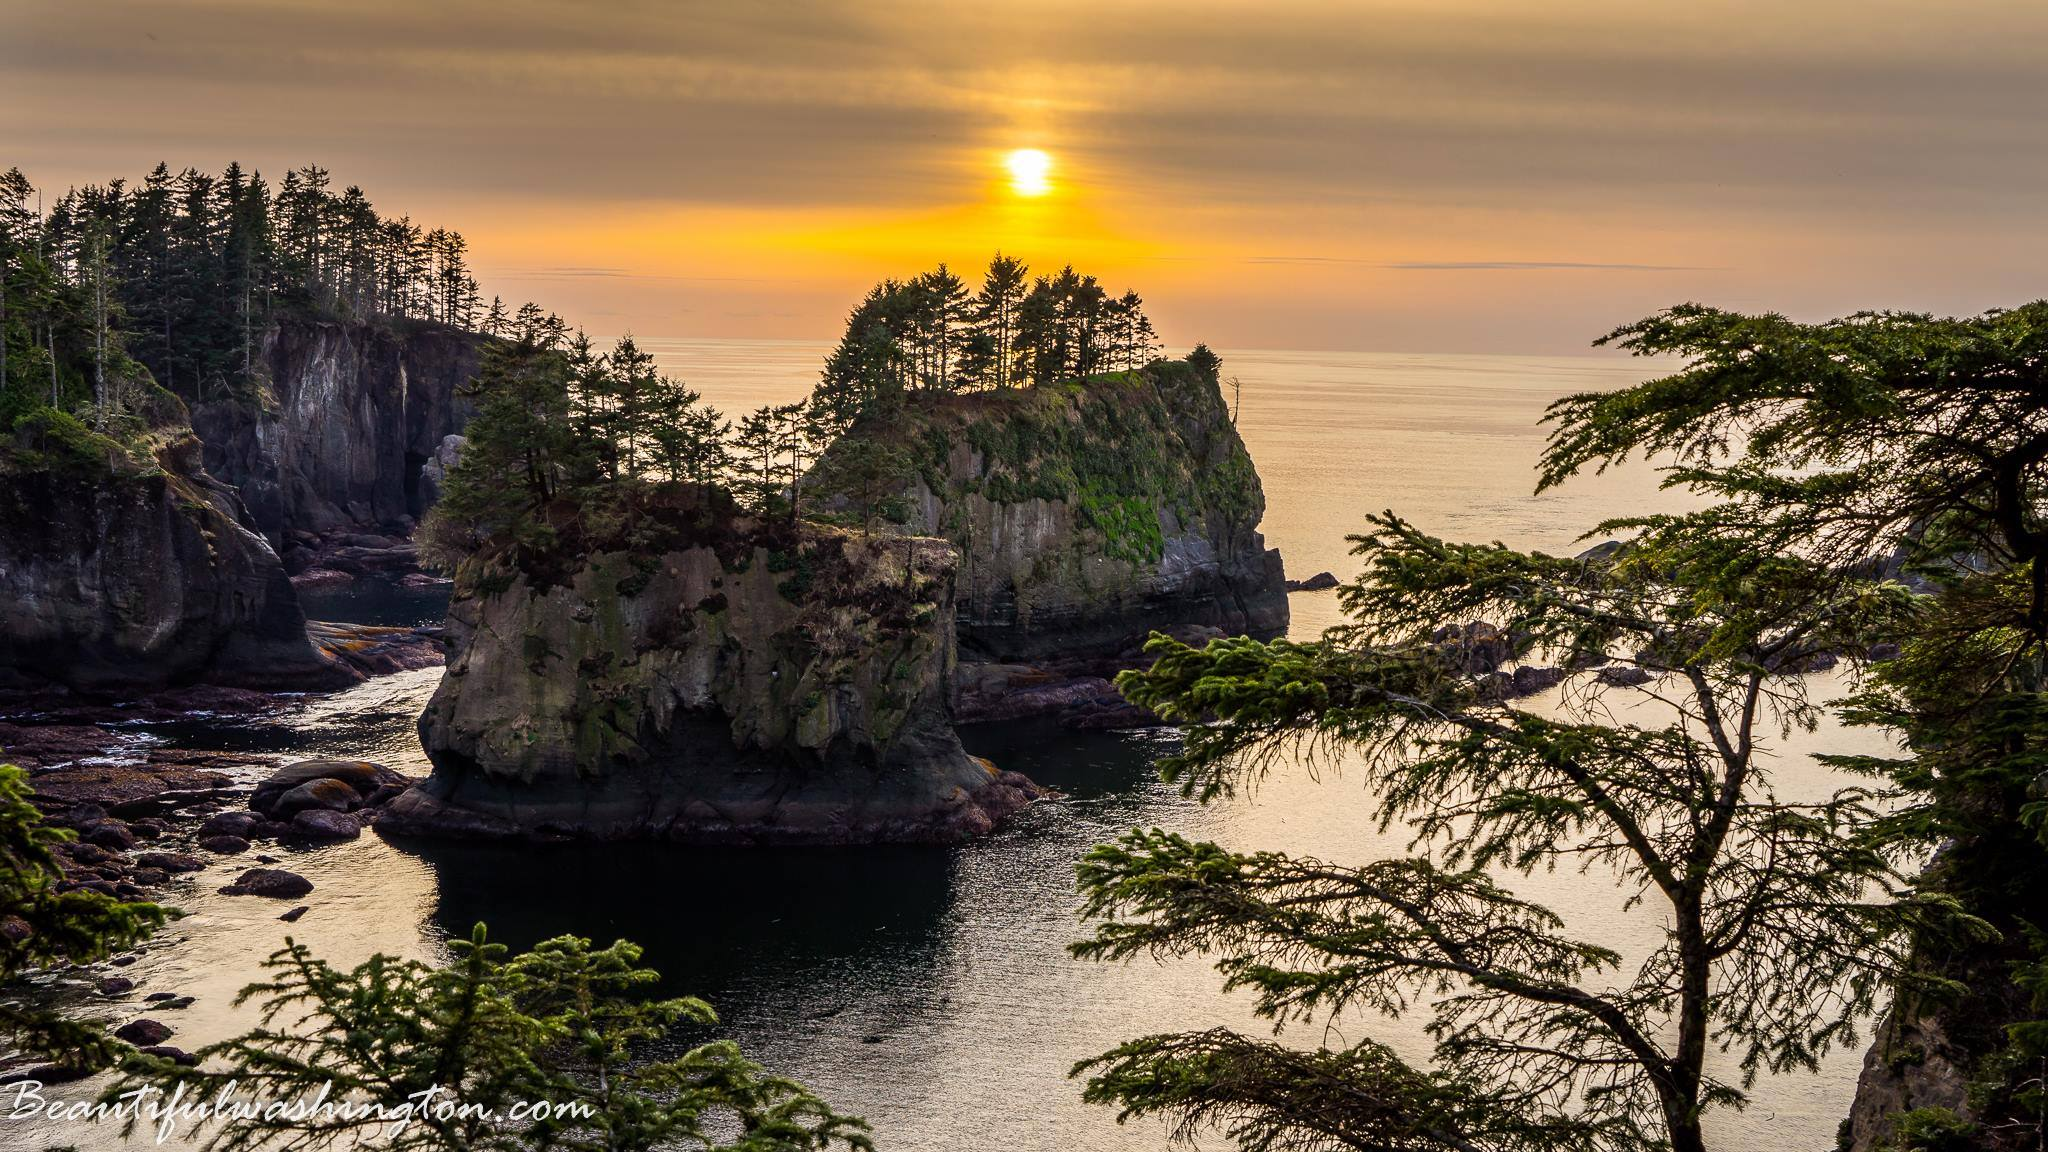 Photo from the Olympic Peninsula Region, Washington State